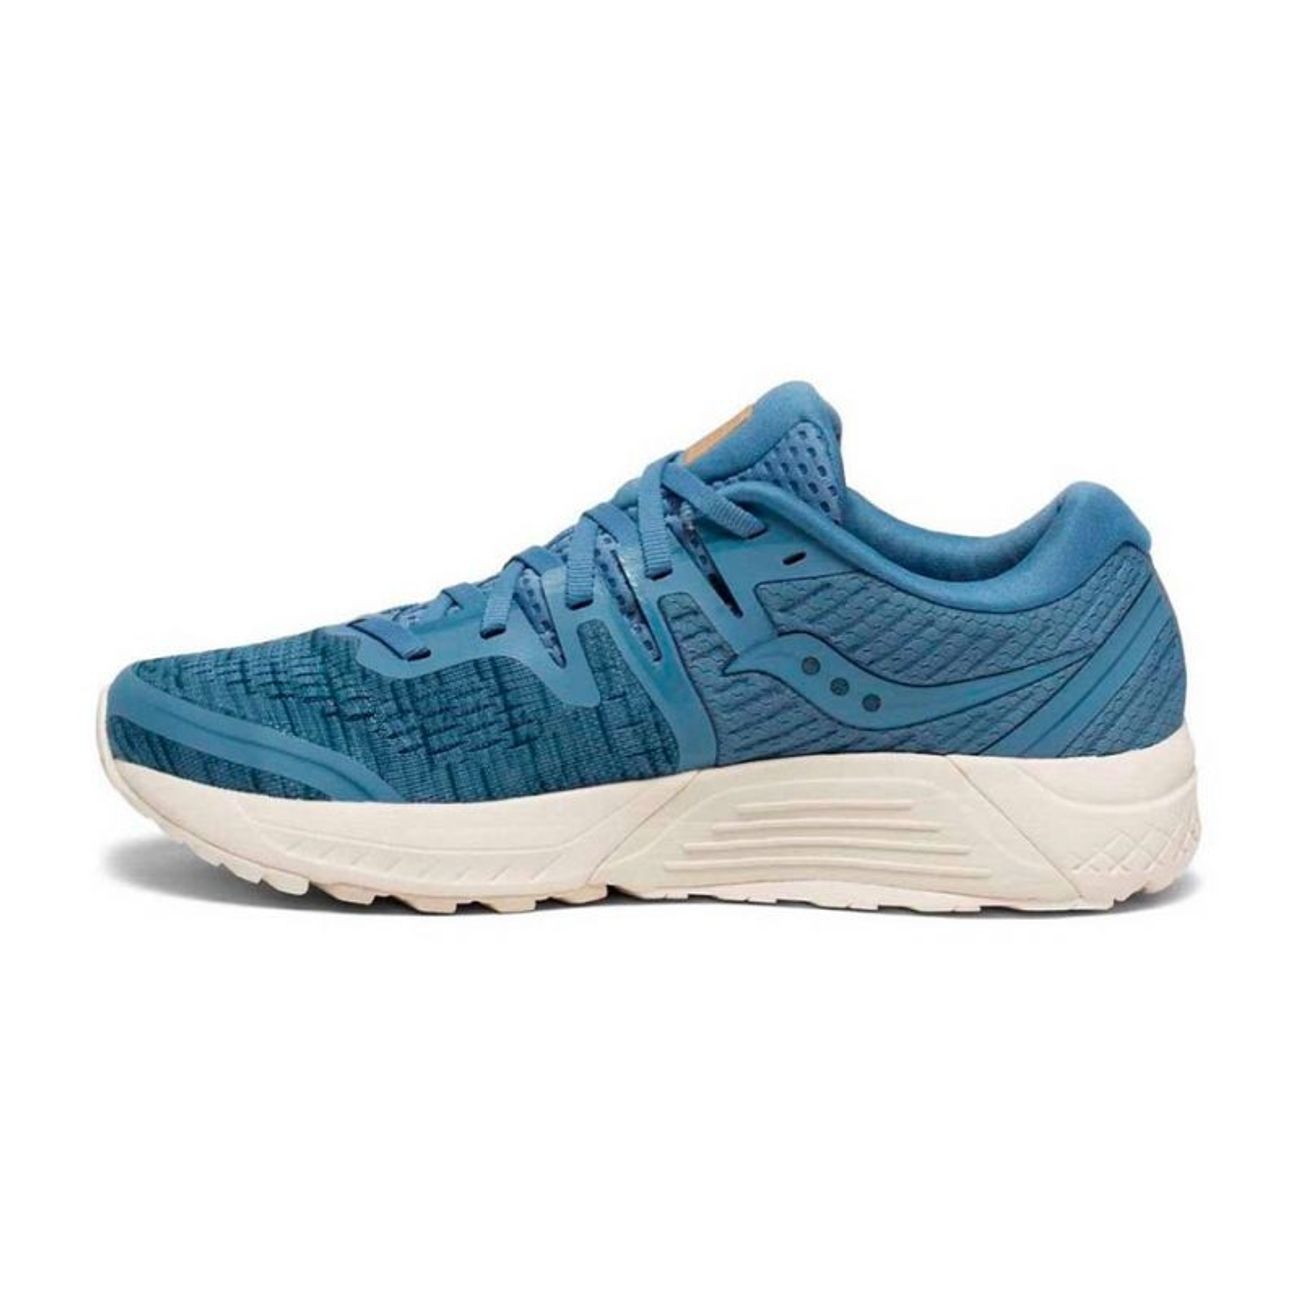 Crème Guide Bleu Chaussures Iso Running 2 Homme Clair Femme Saucony rBdeWxCo